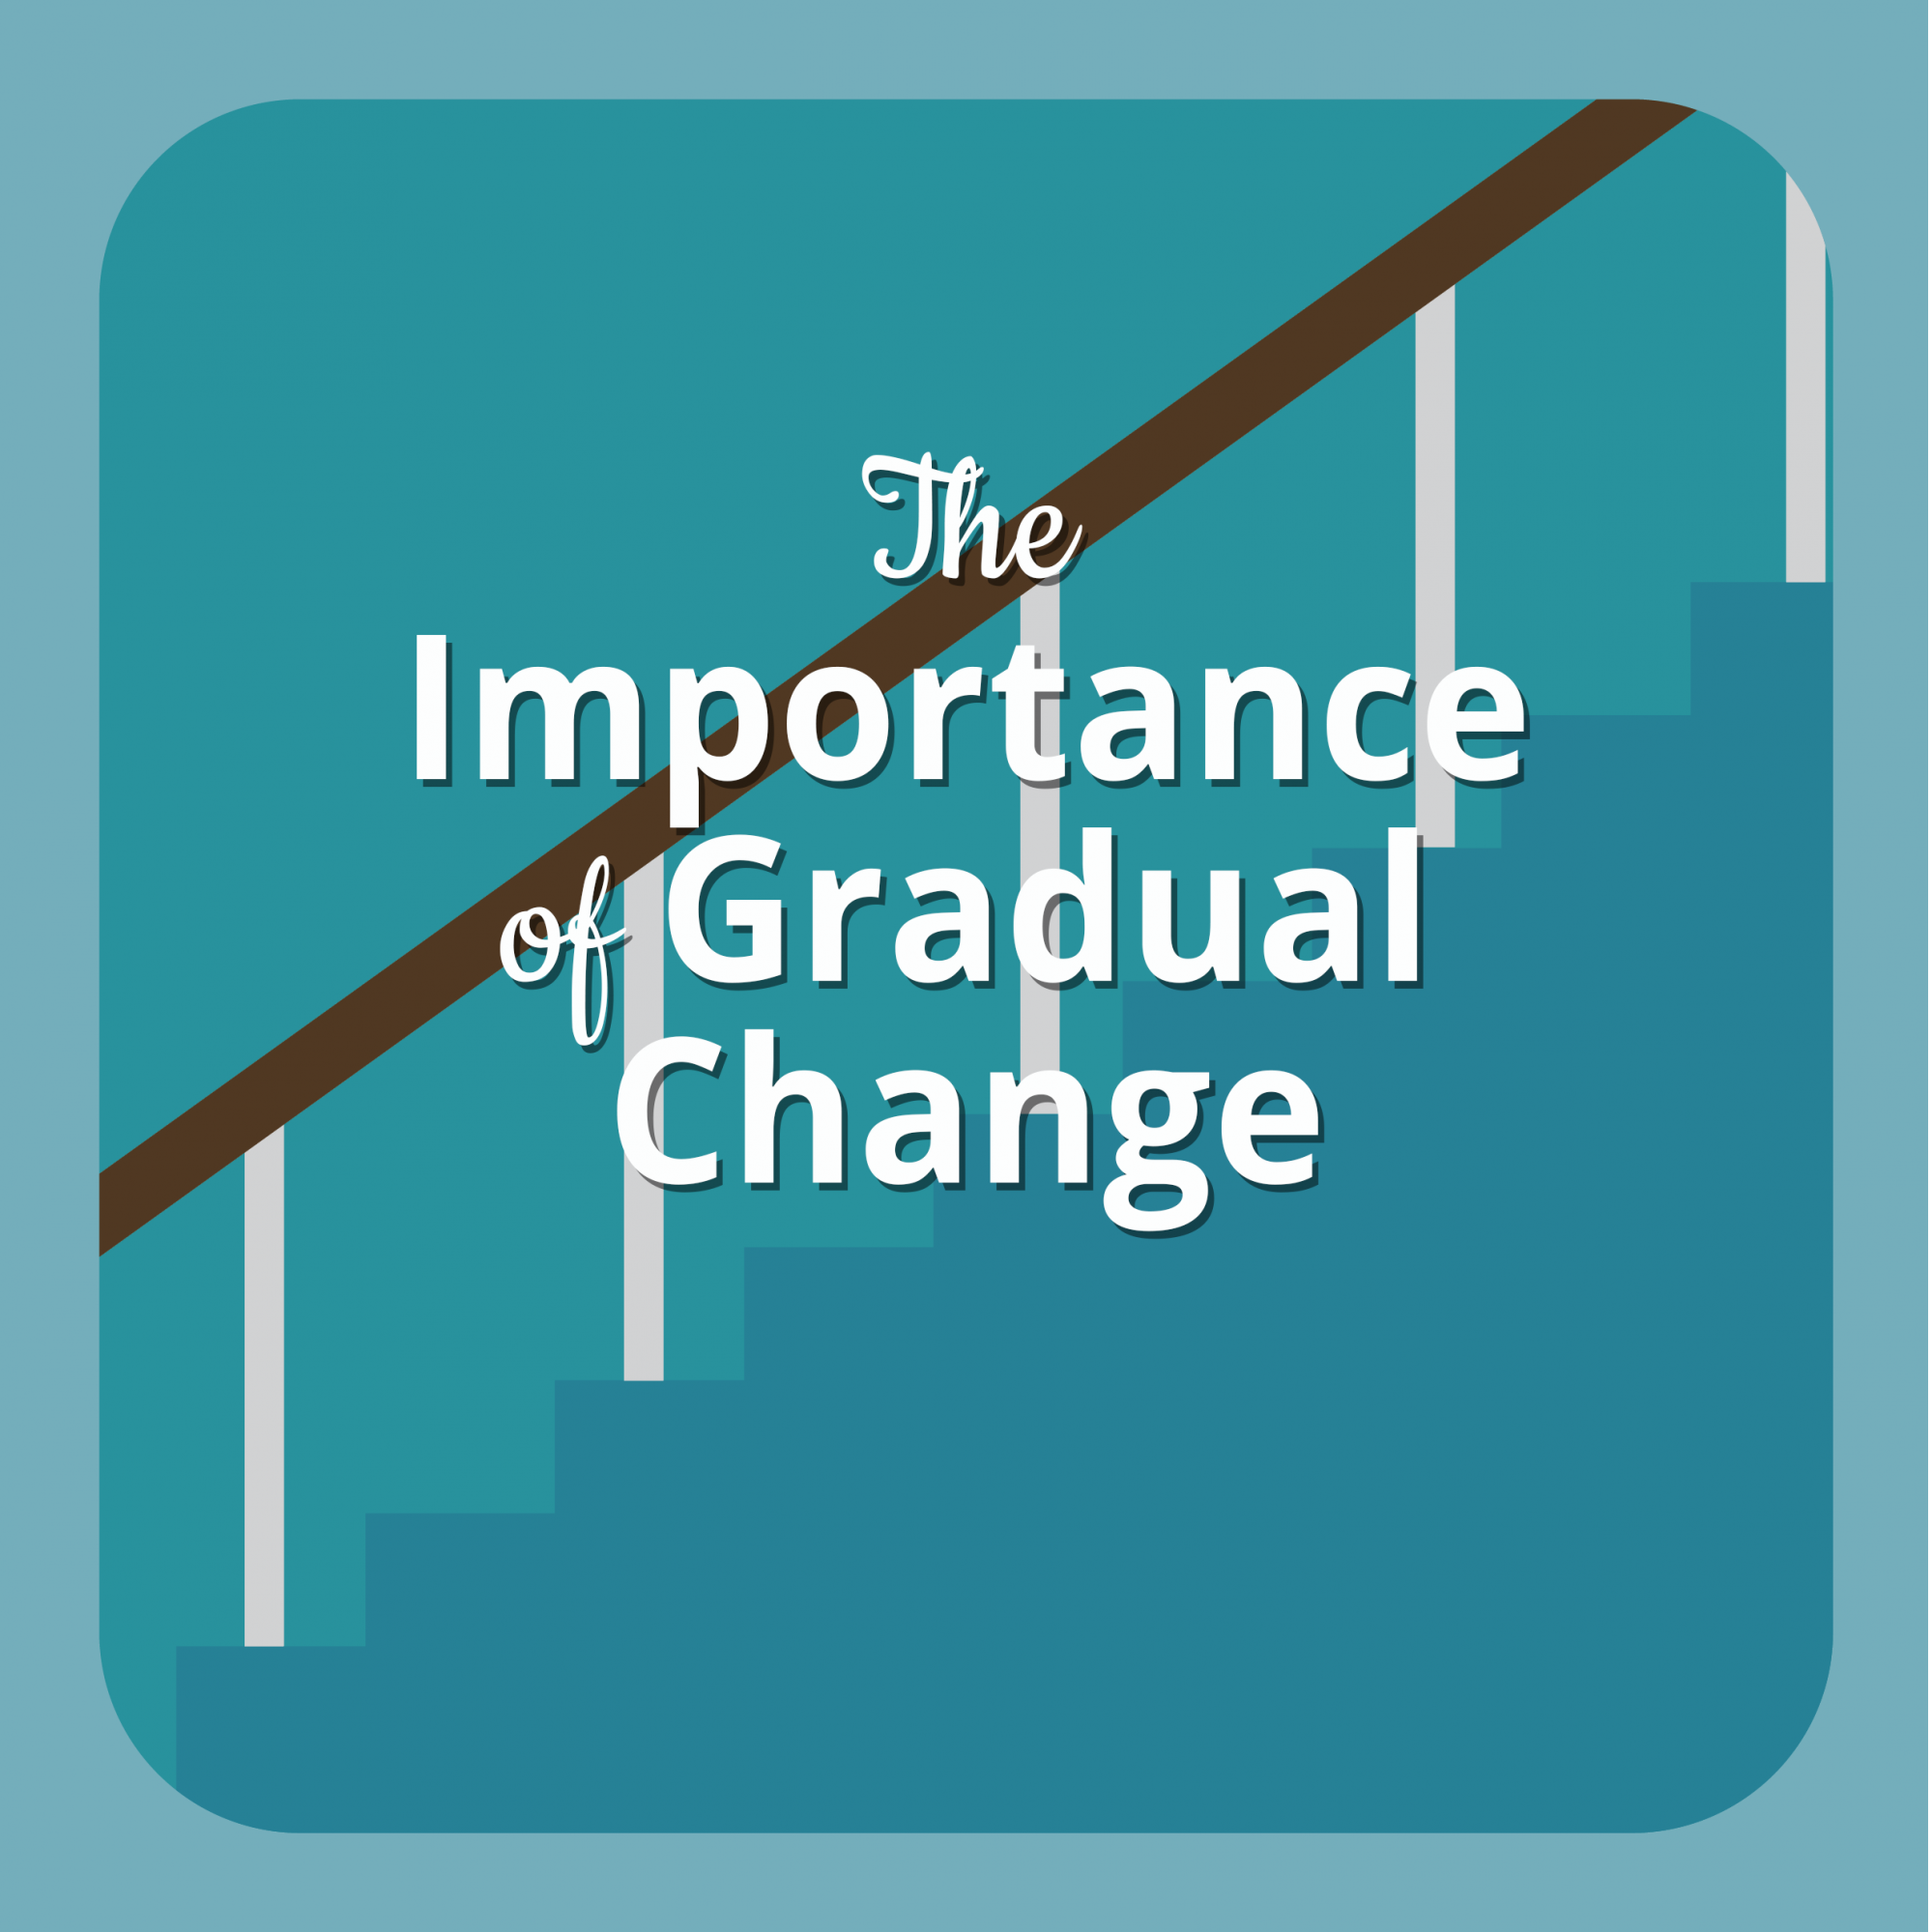 The Importance of Gradual Change